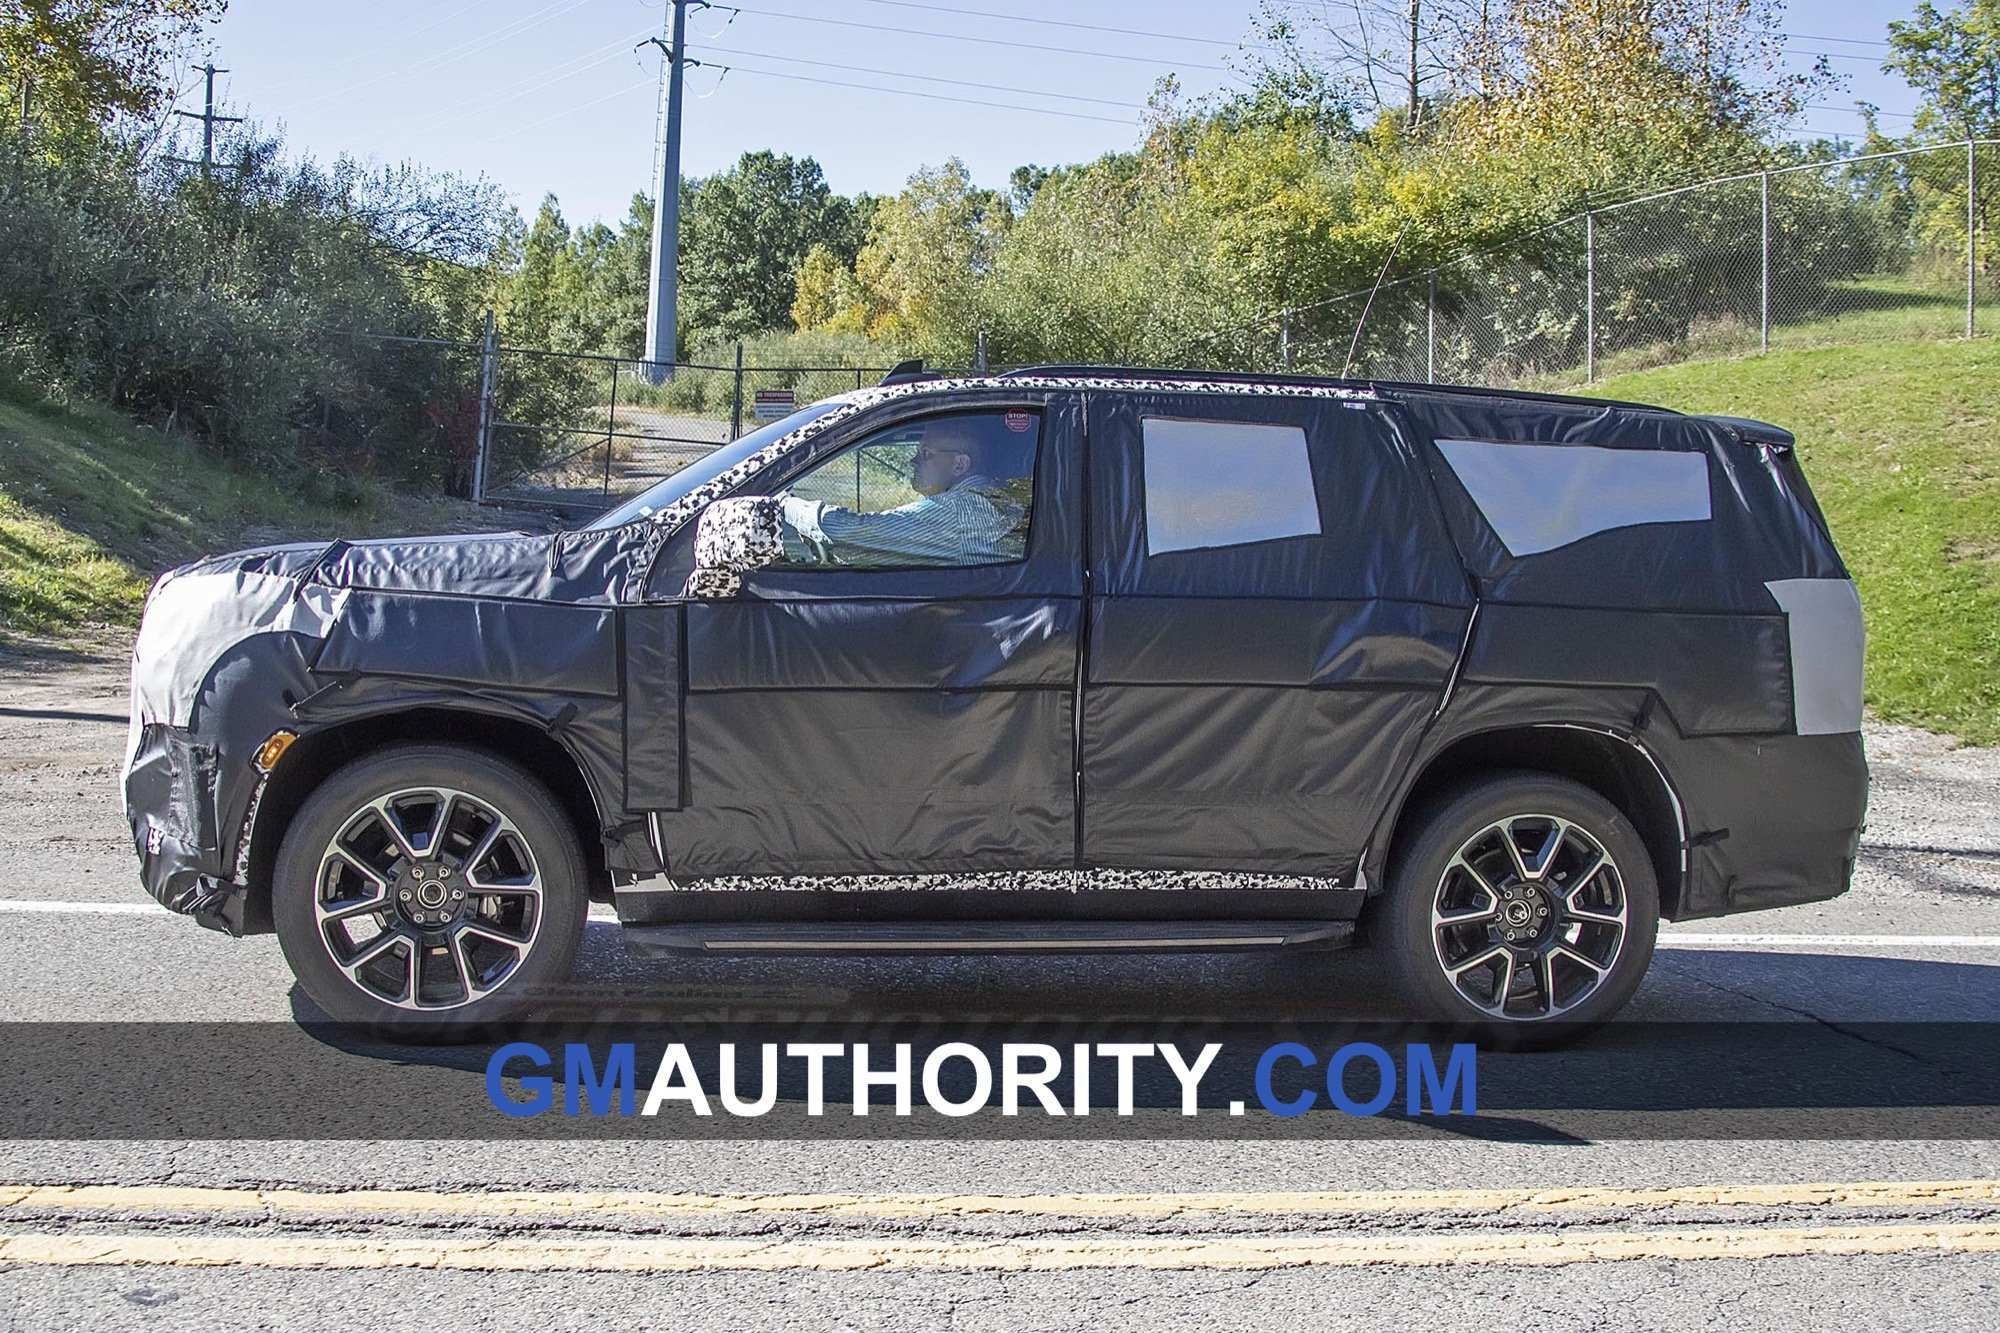 52 The Best When Will The 2020 Chevrolet Tahoe Be Released Price